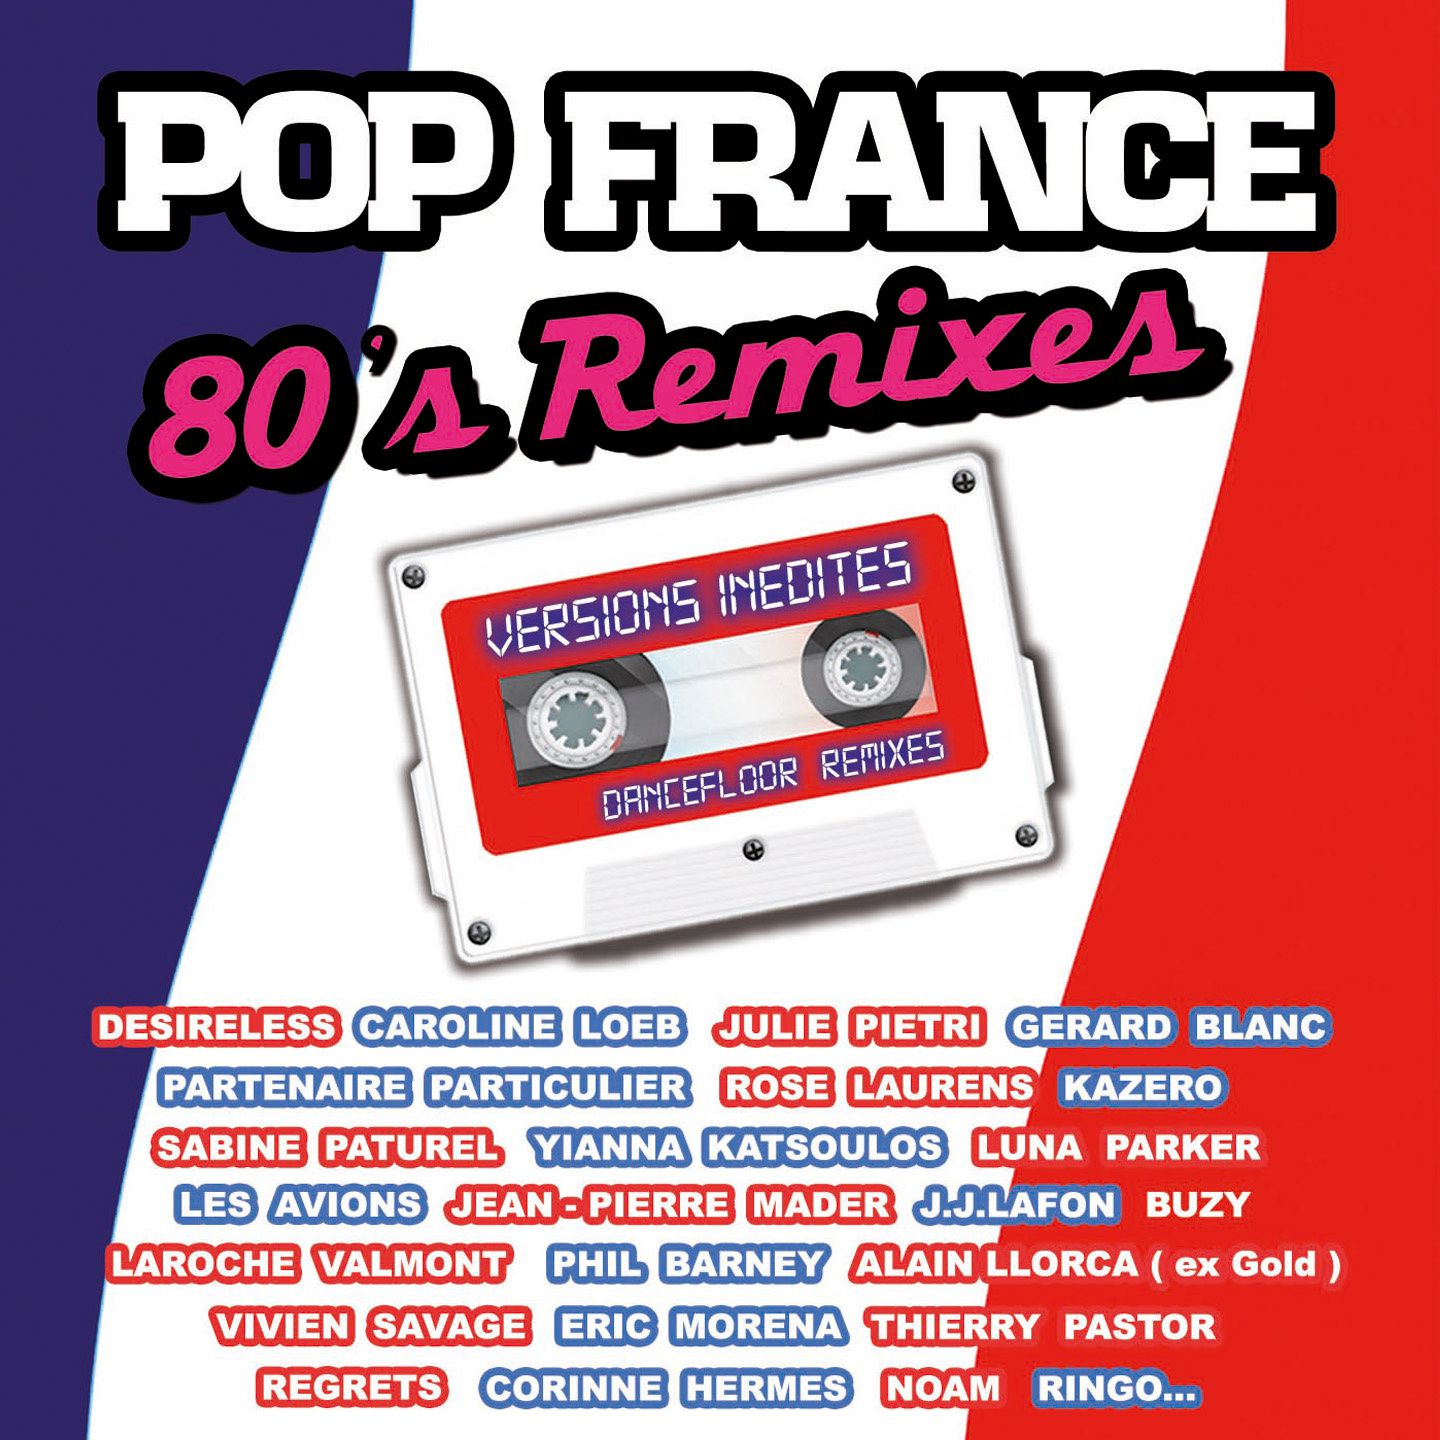 'Pop France' regroupe en version inédite (remixée) le meilleur des tubes des 80's sous forme de double CD collector !